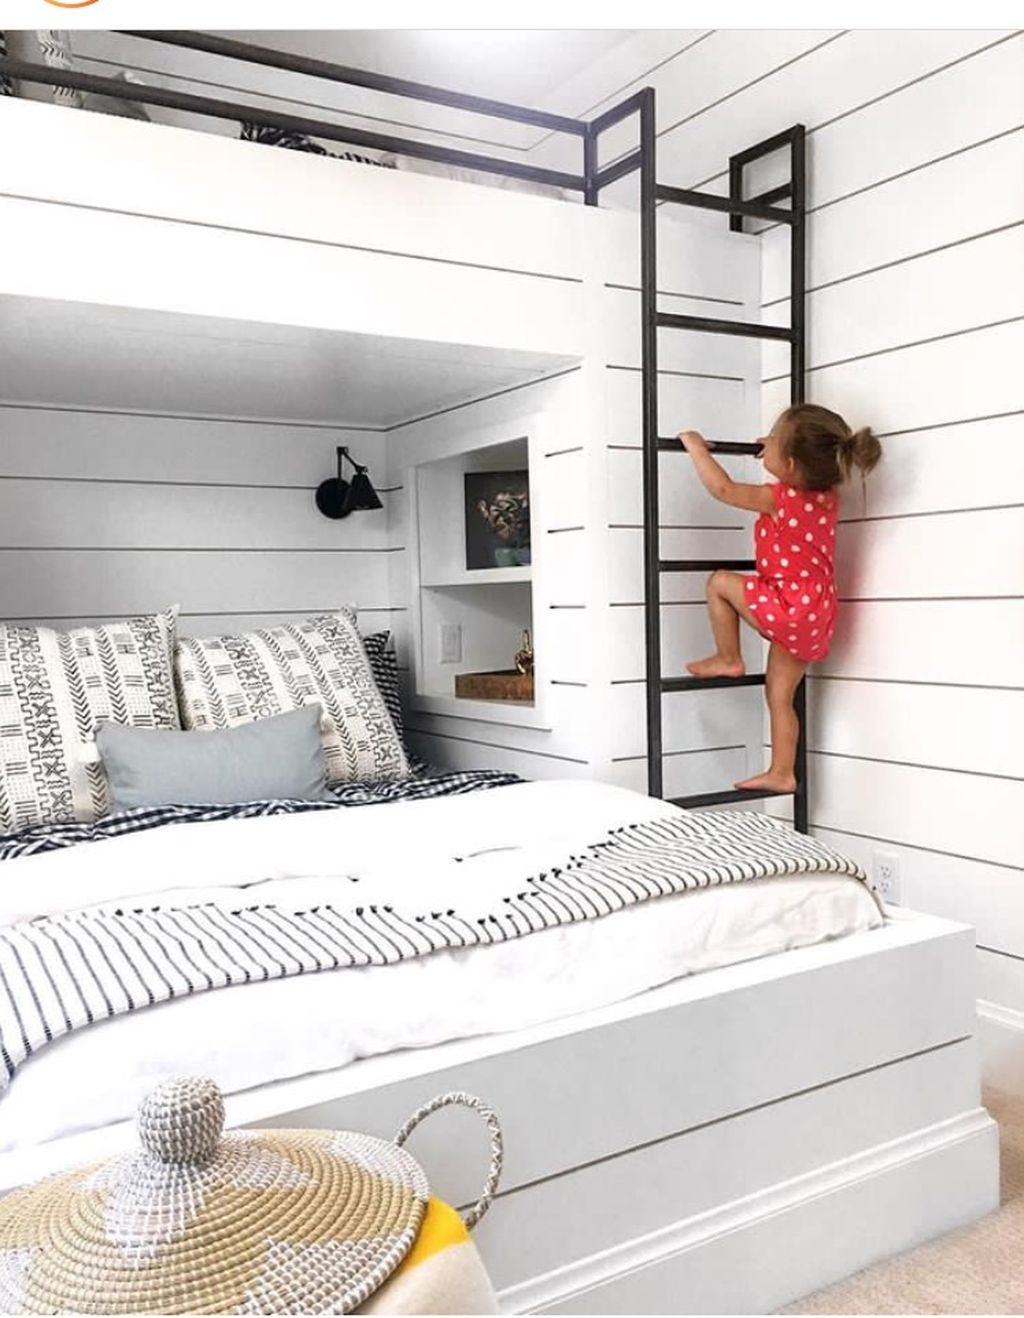 Cool And Functional Built In Bunk Beds Ideas For Kids42